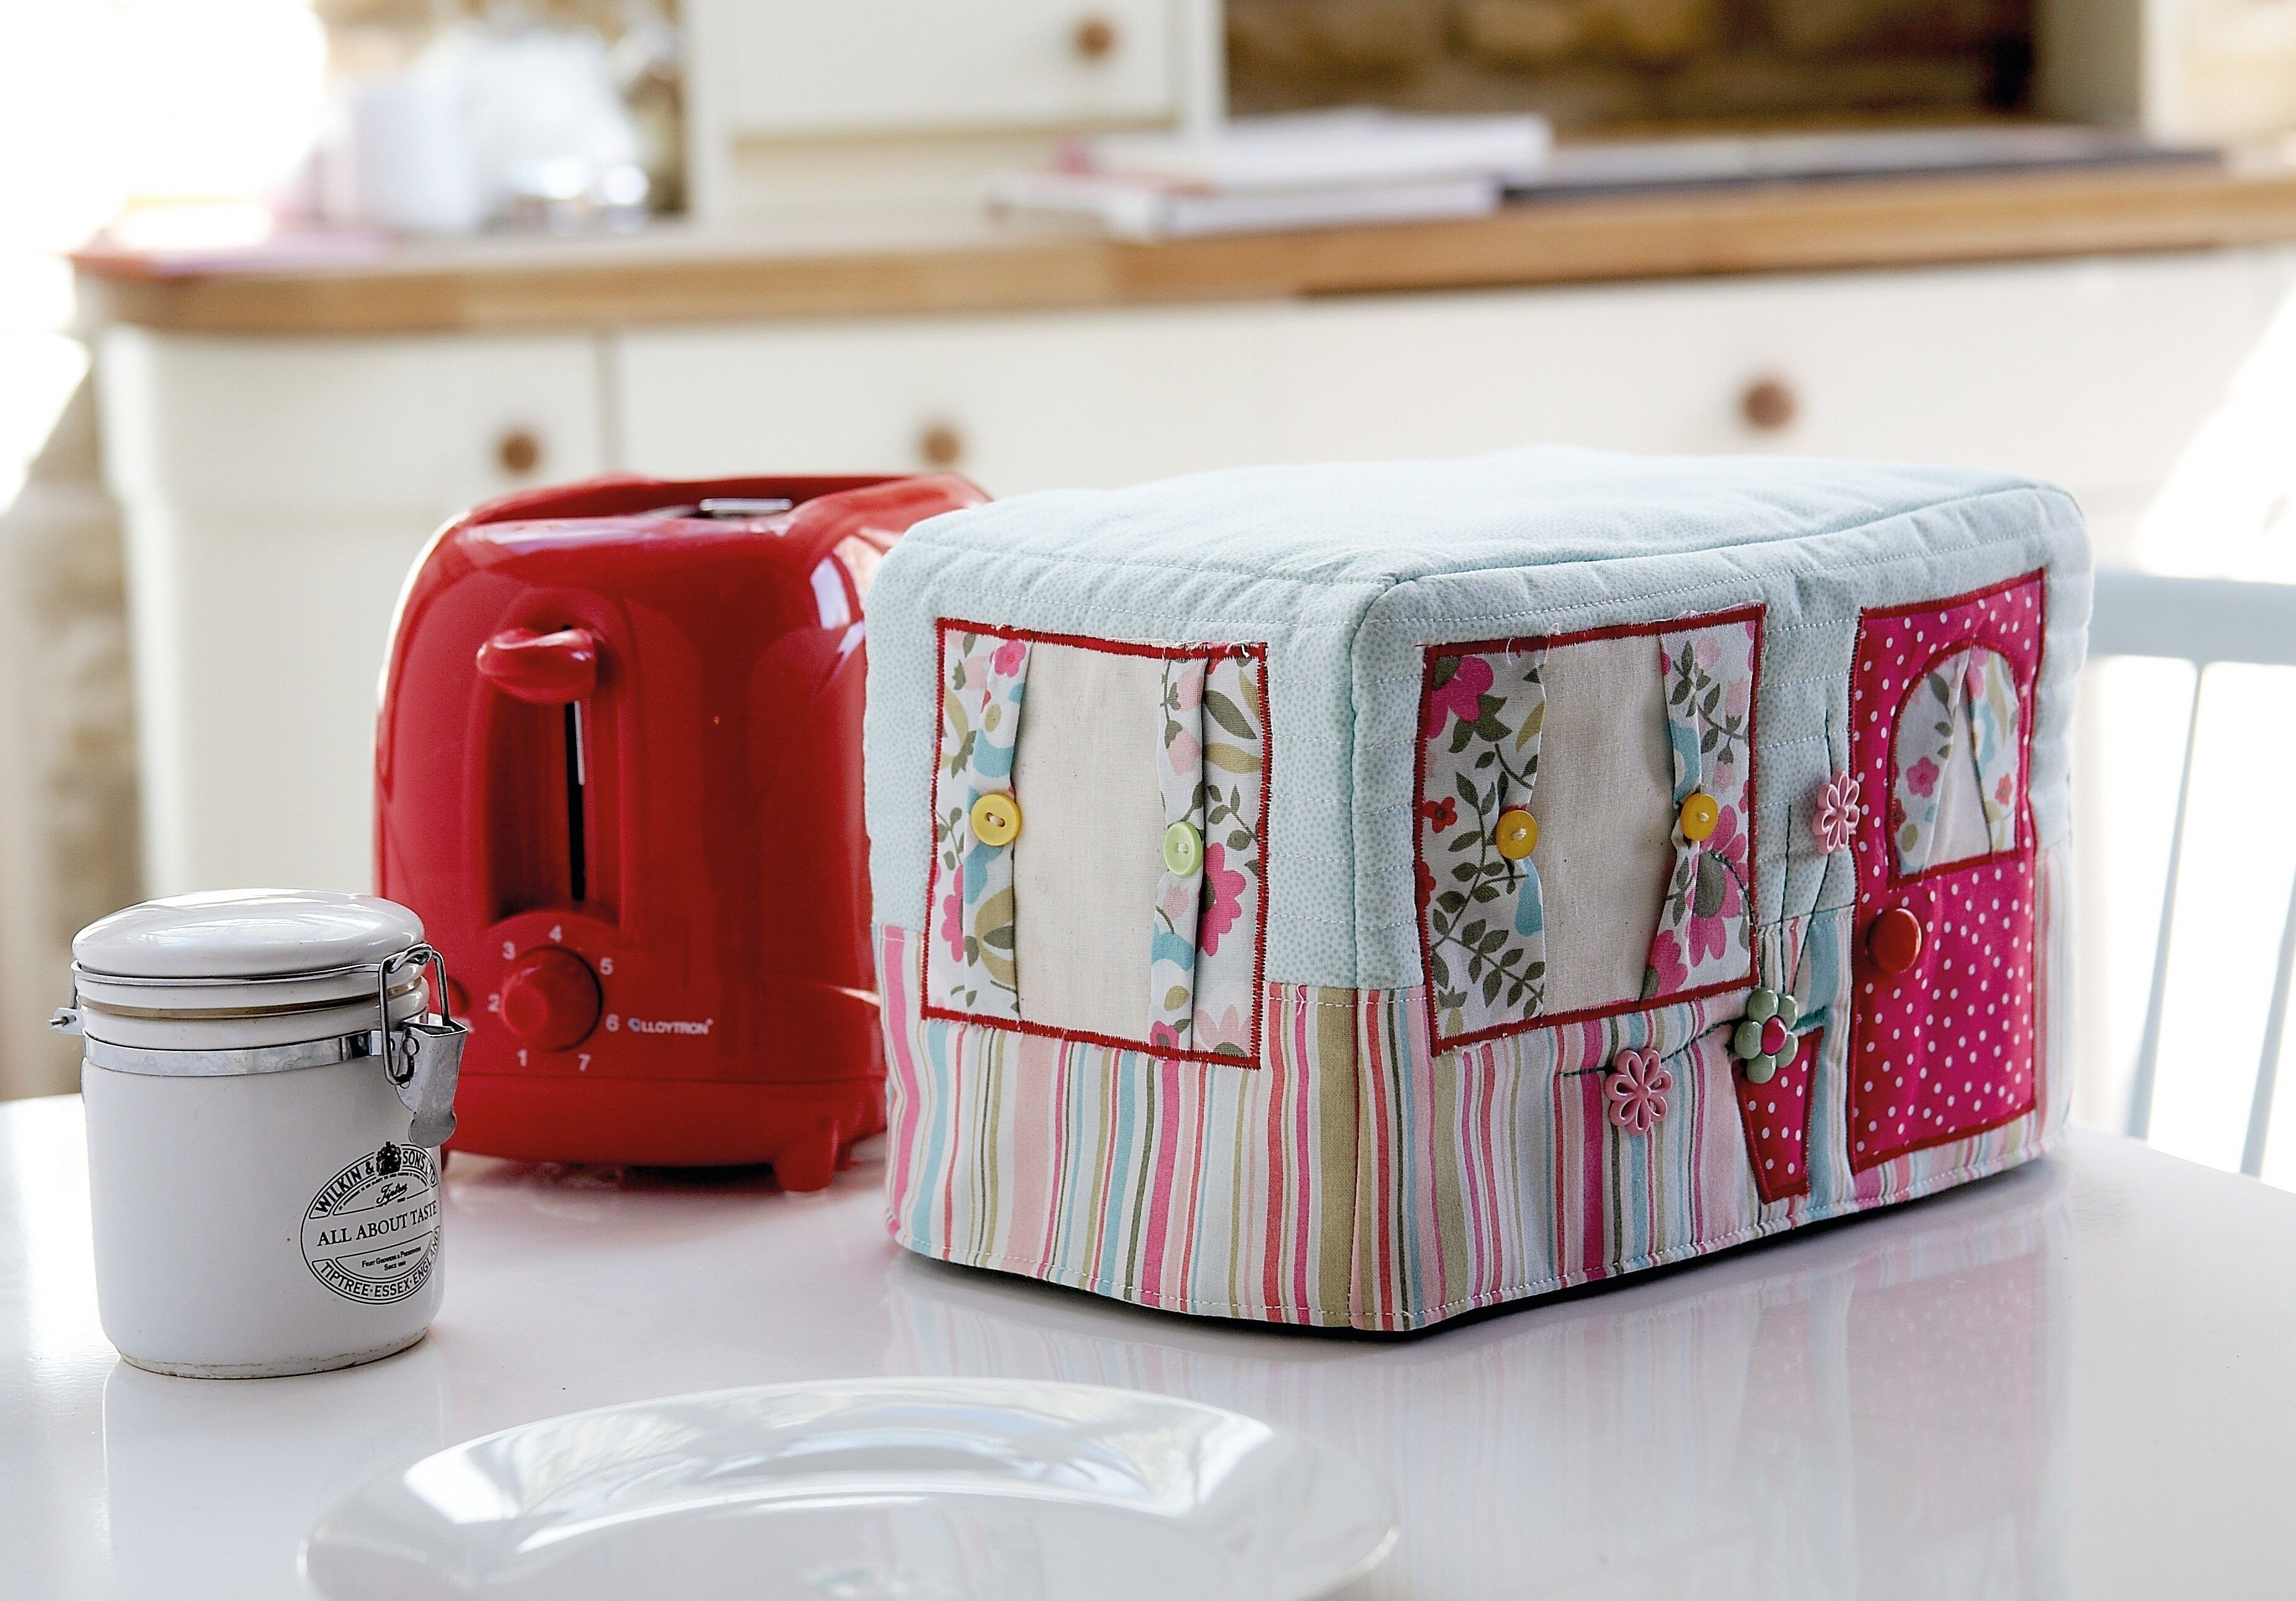 Caravan Toaster Cover Toaster Cover Sewing Basics